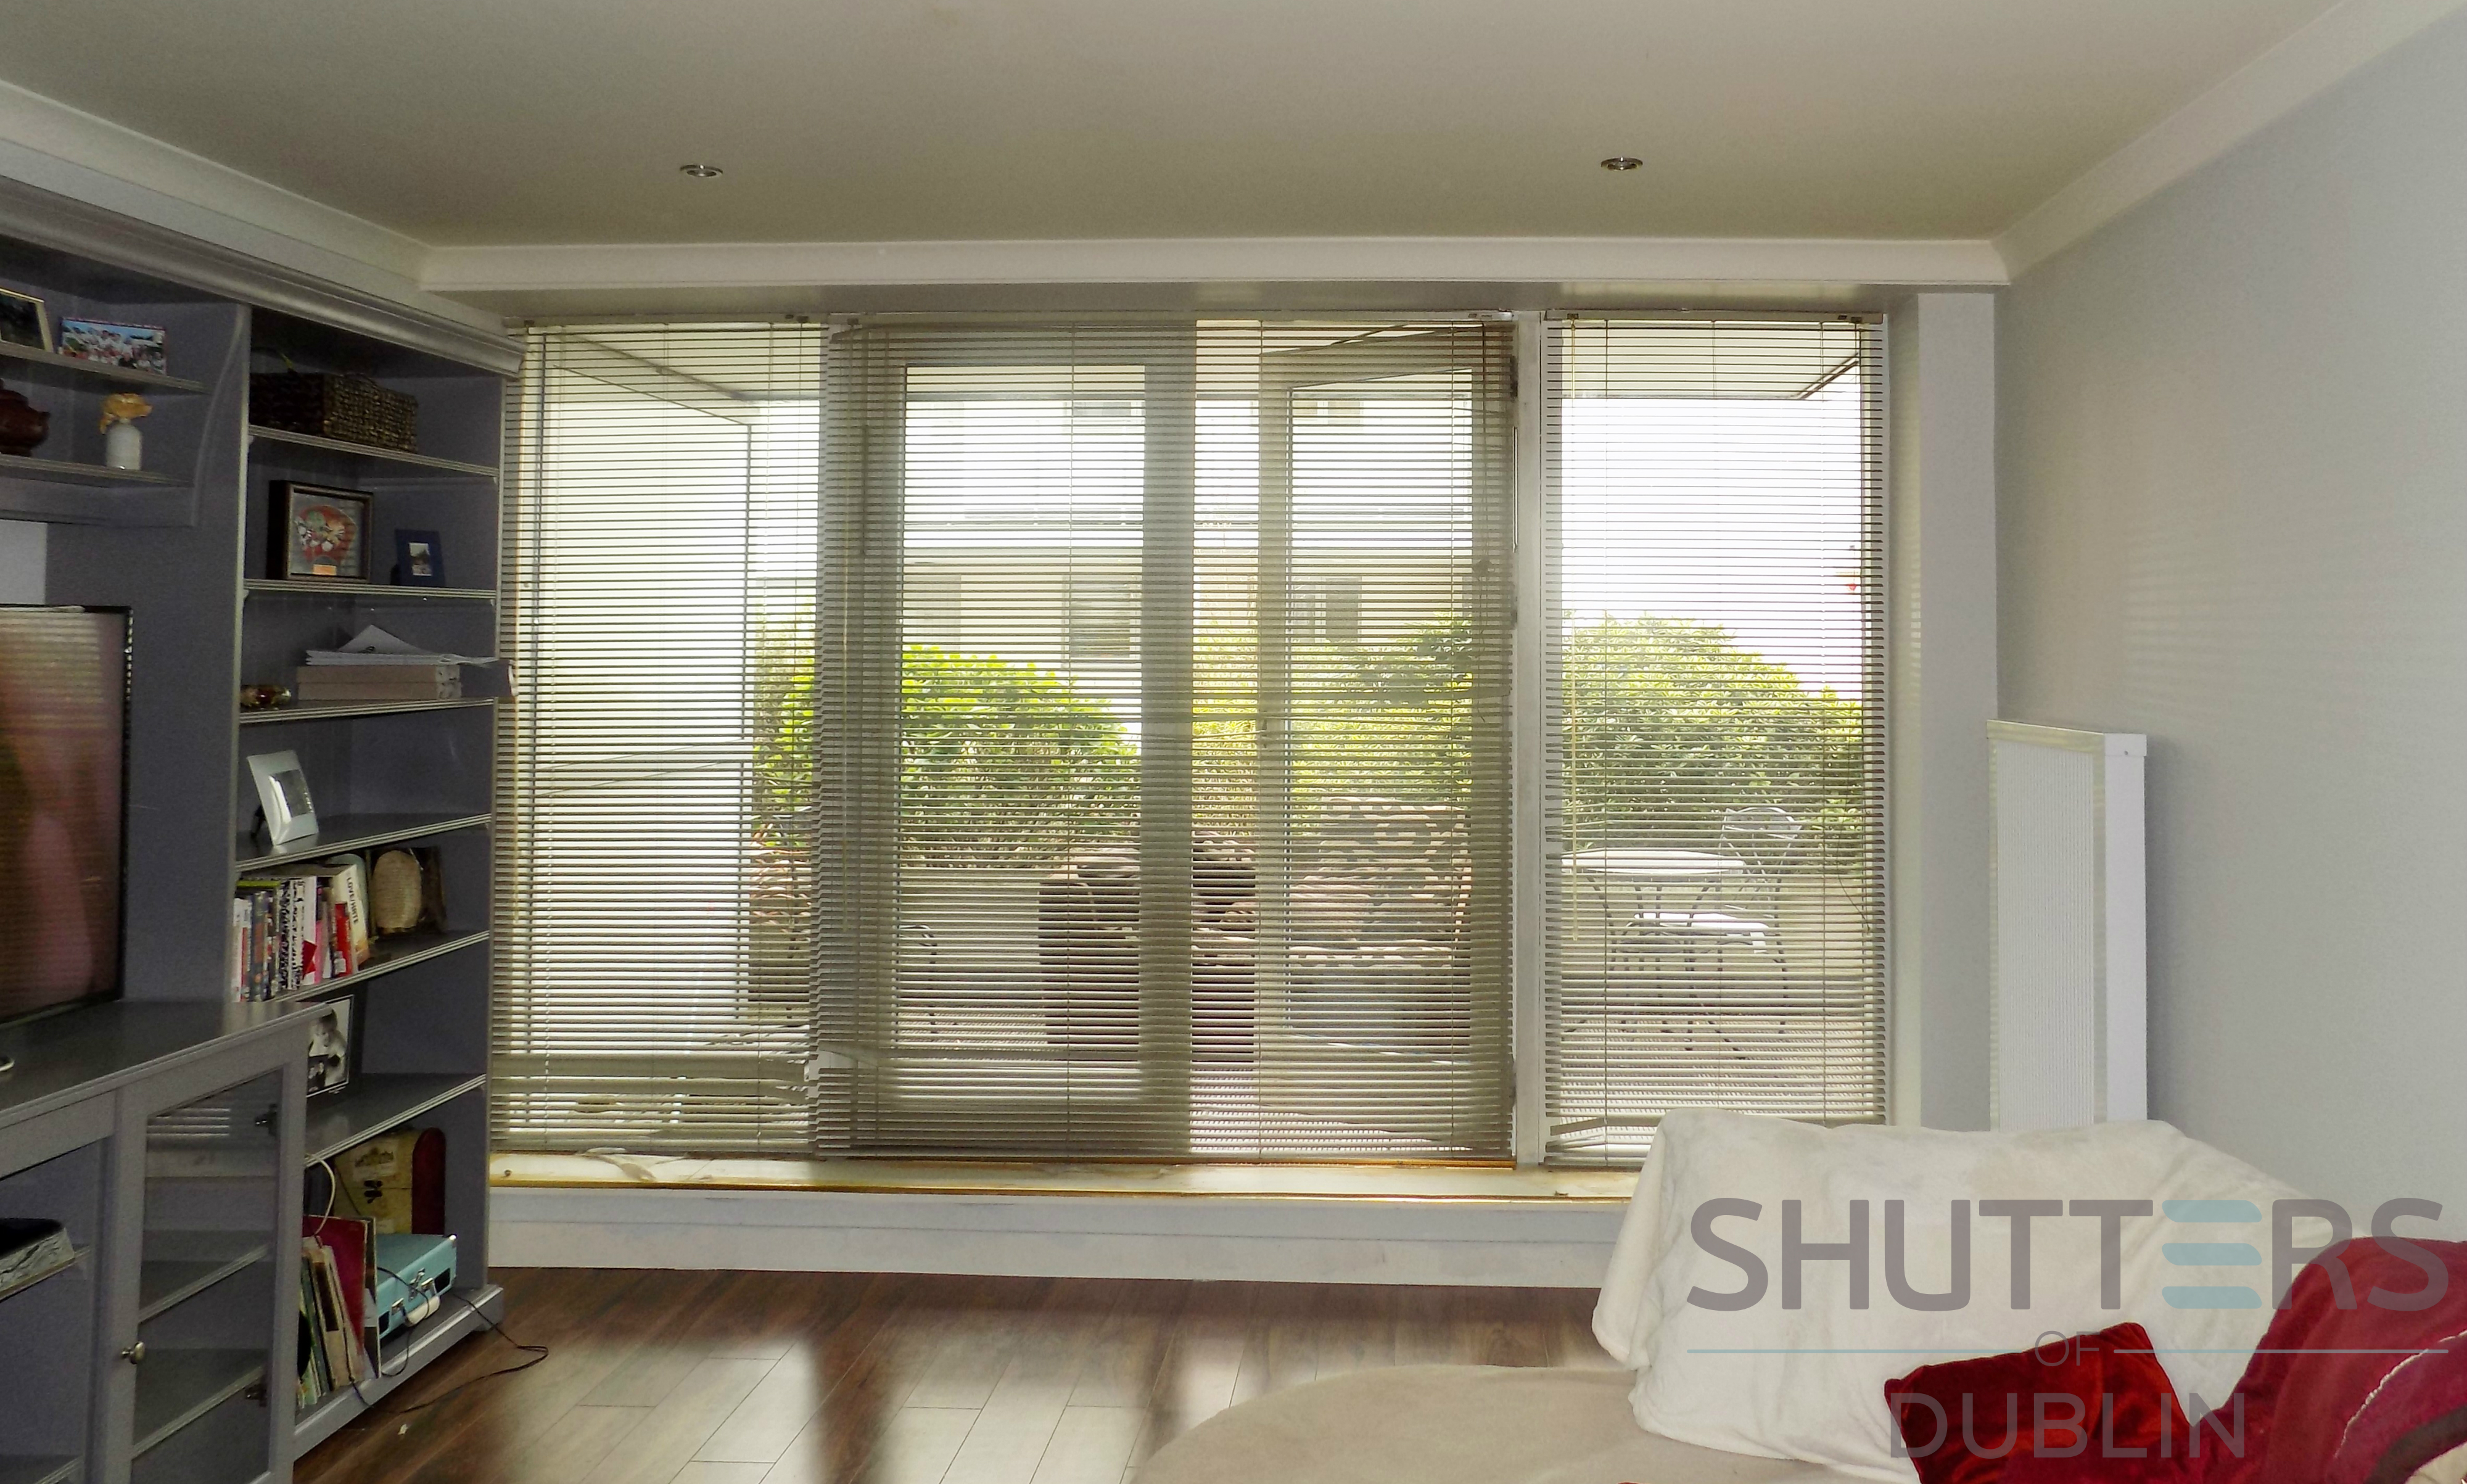 image and shades norman shutter shutters villa certification blinds blind